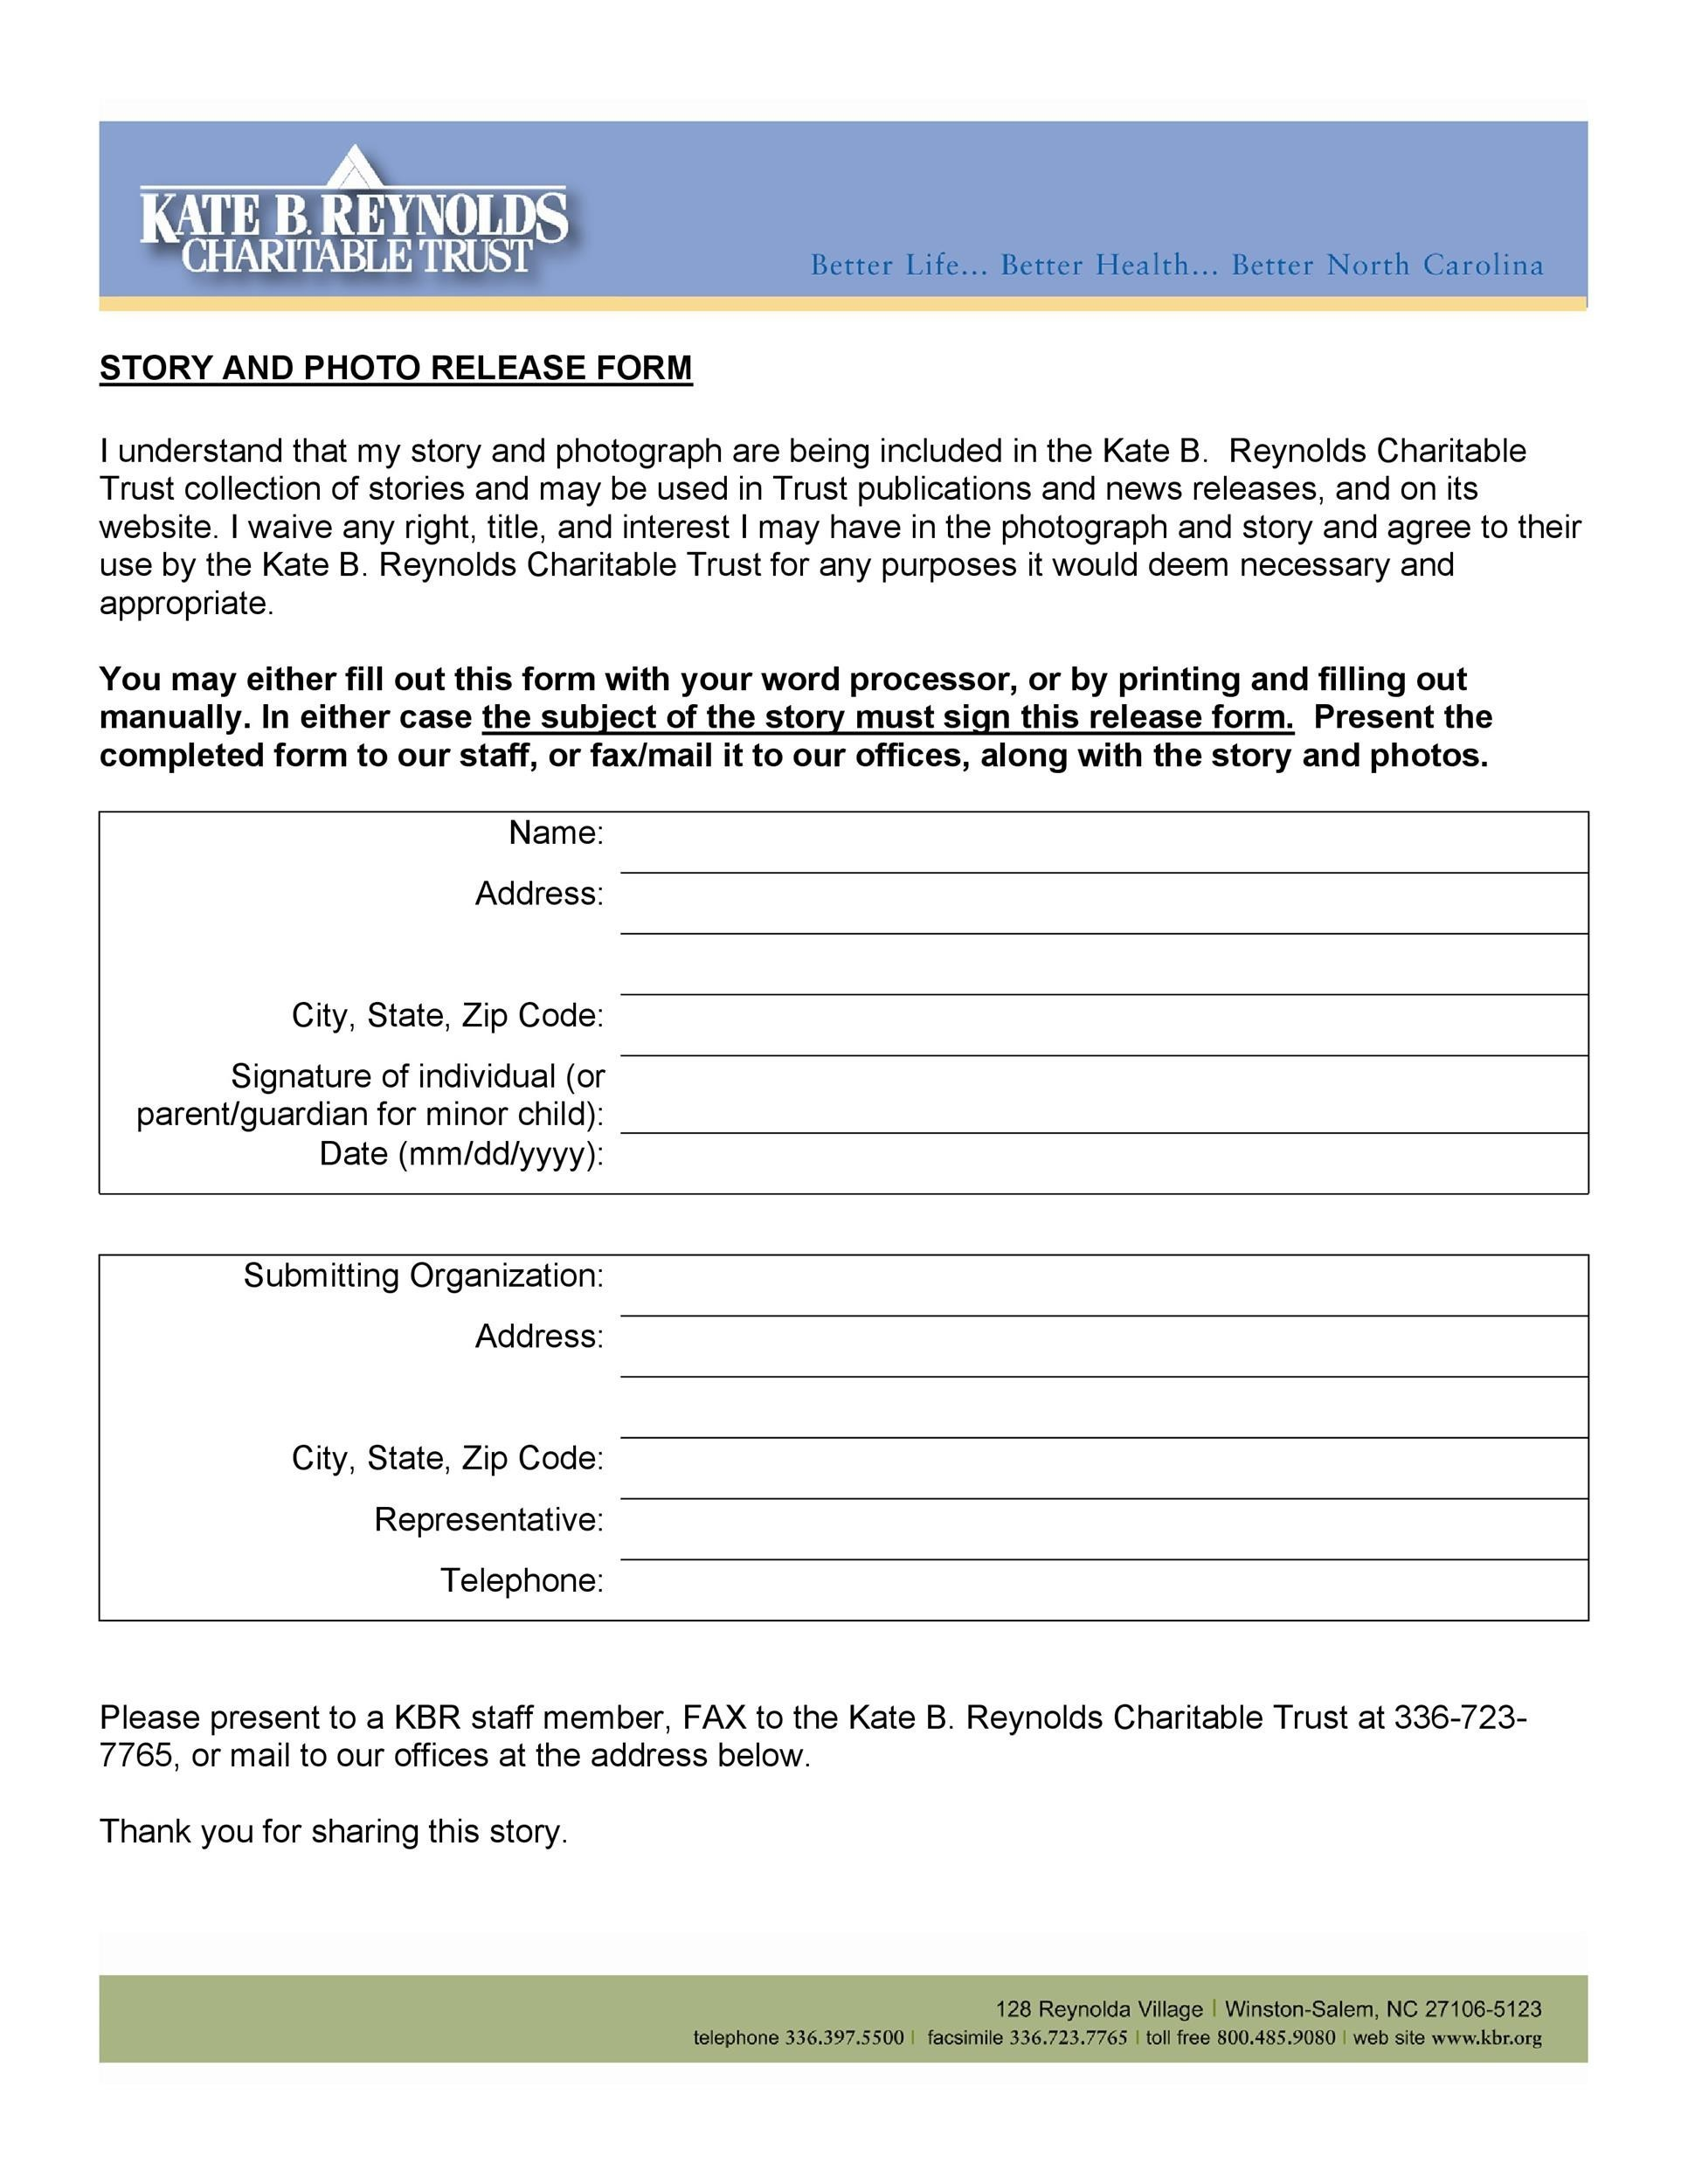 Free photo release form 35